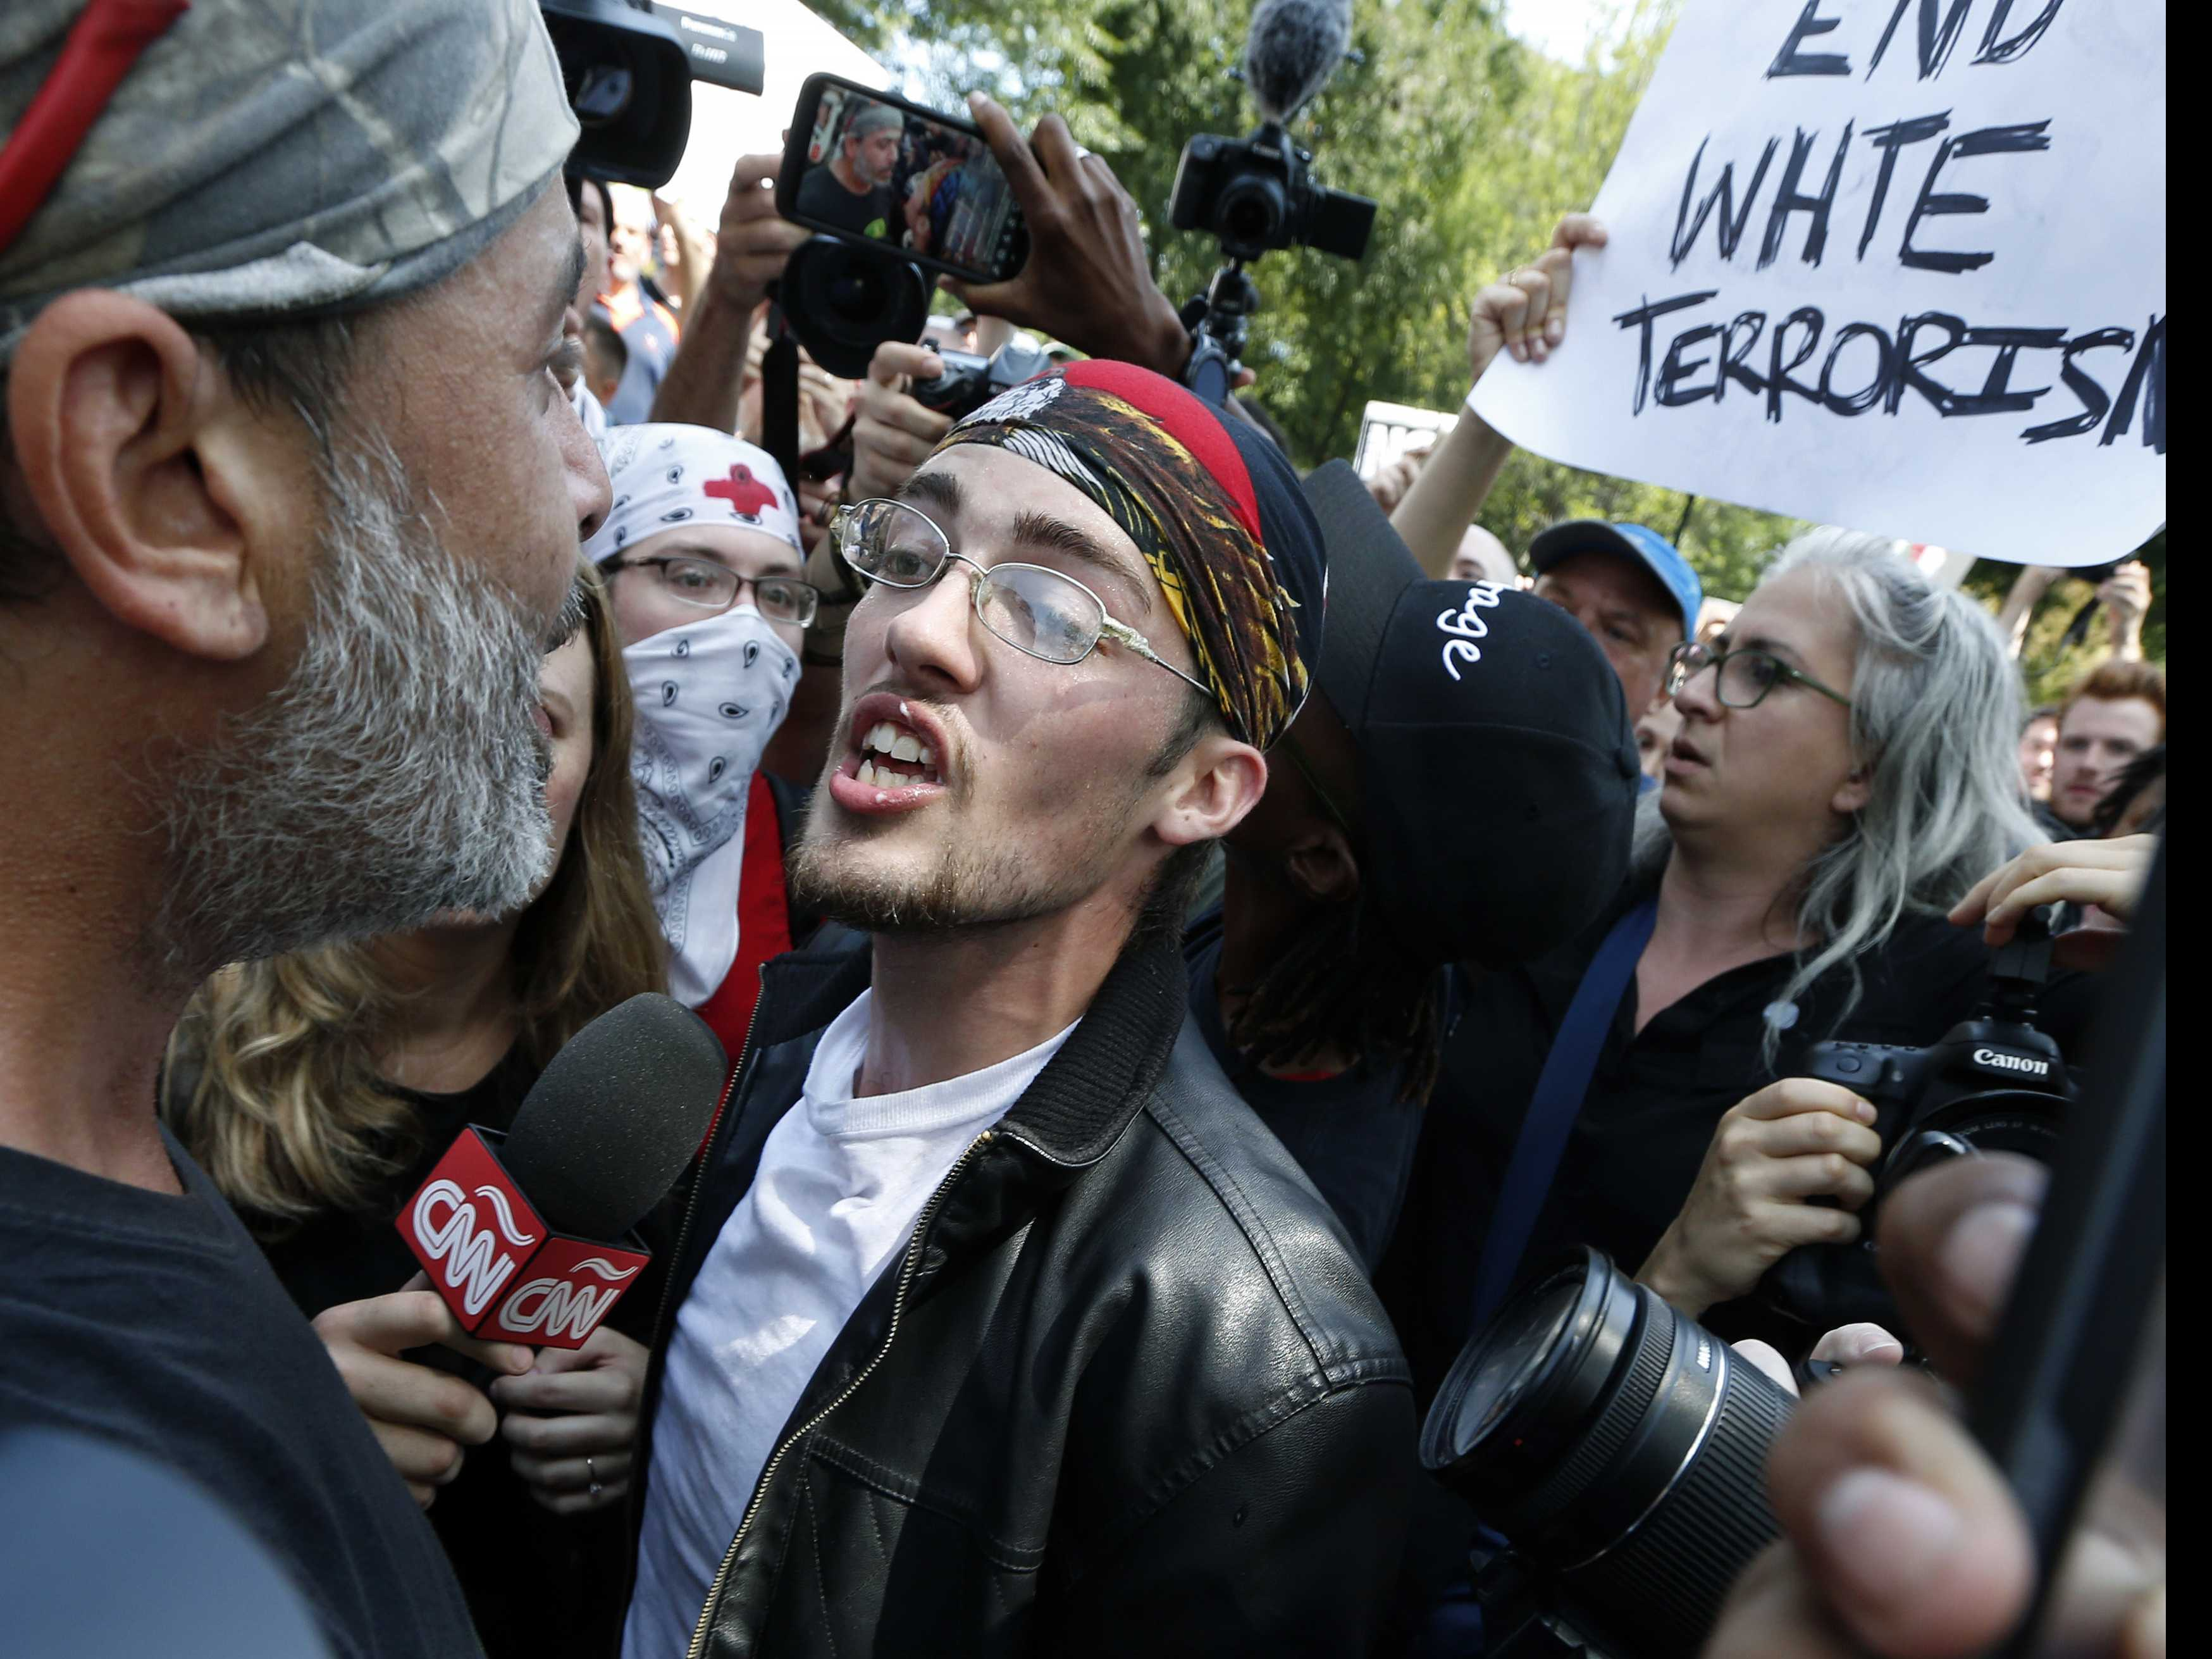 Violence in Charlottesville Leads to Soul-Searching at ACLU